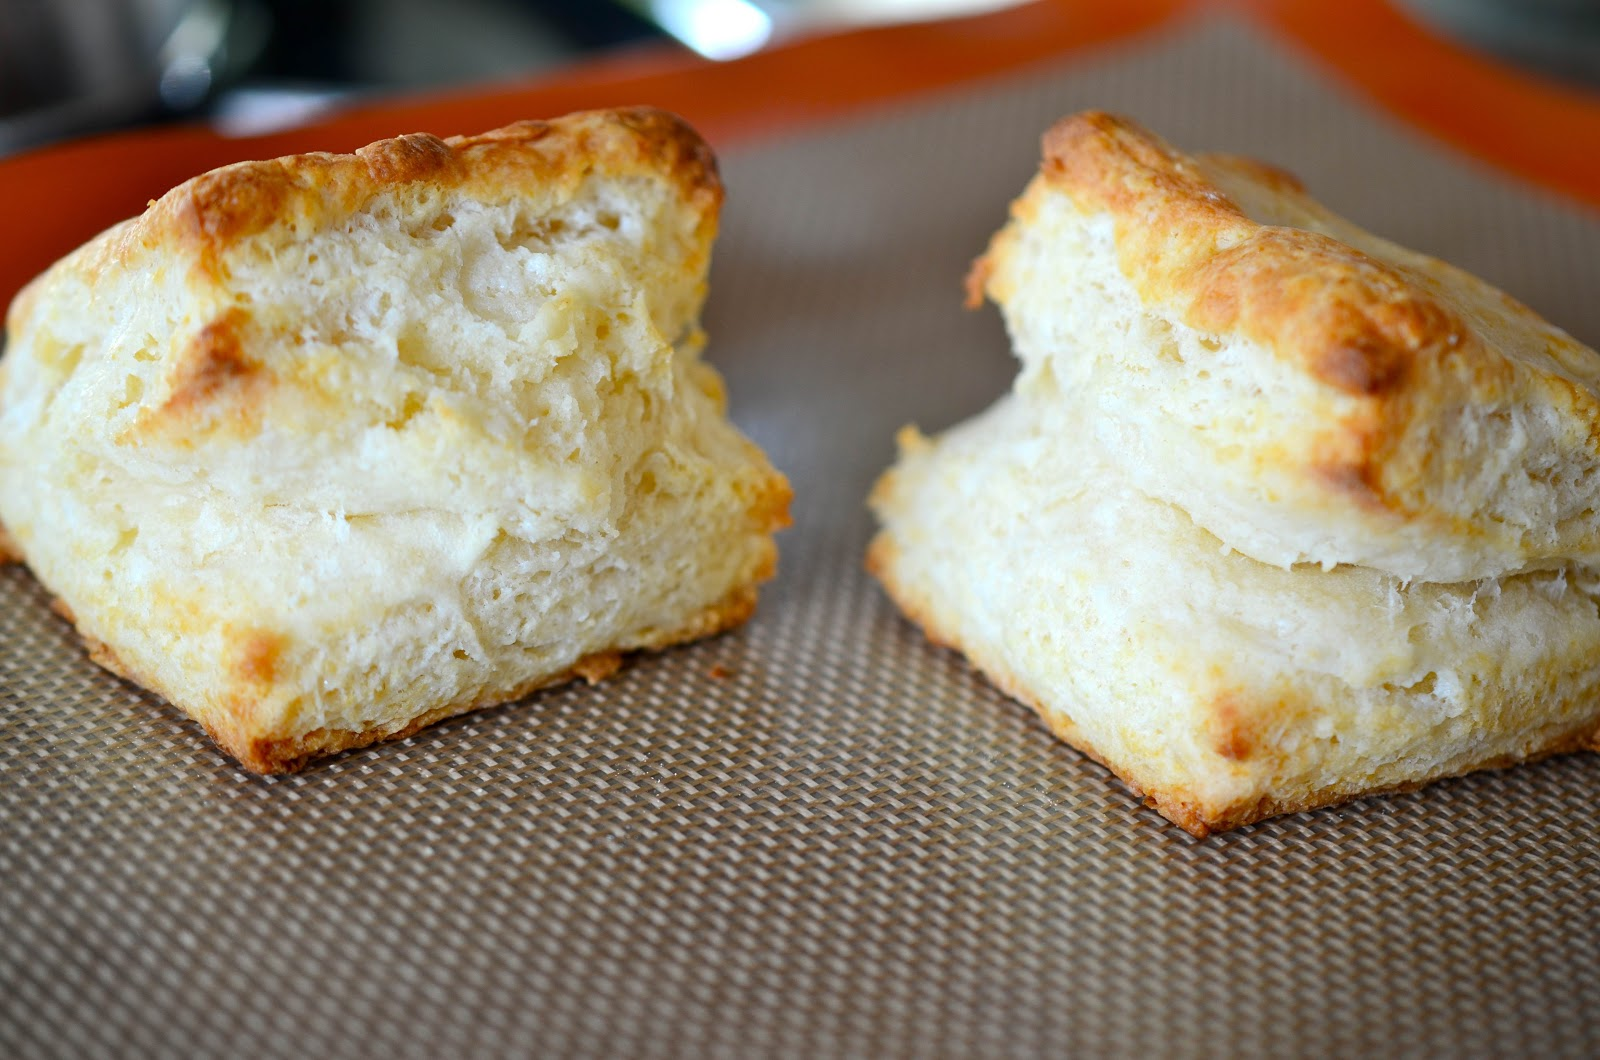 Omnivorous: Flaky Buttermilk Biscuits